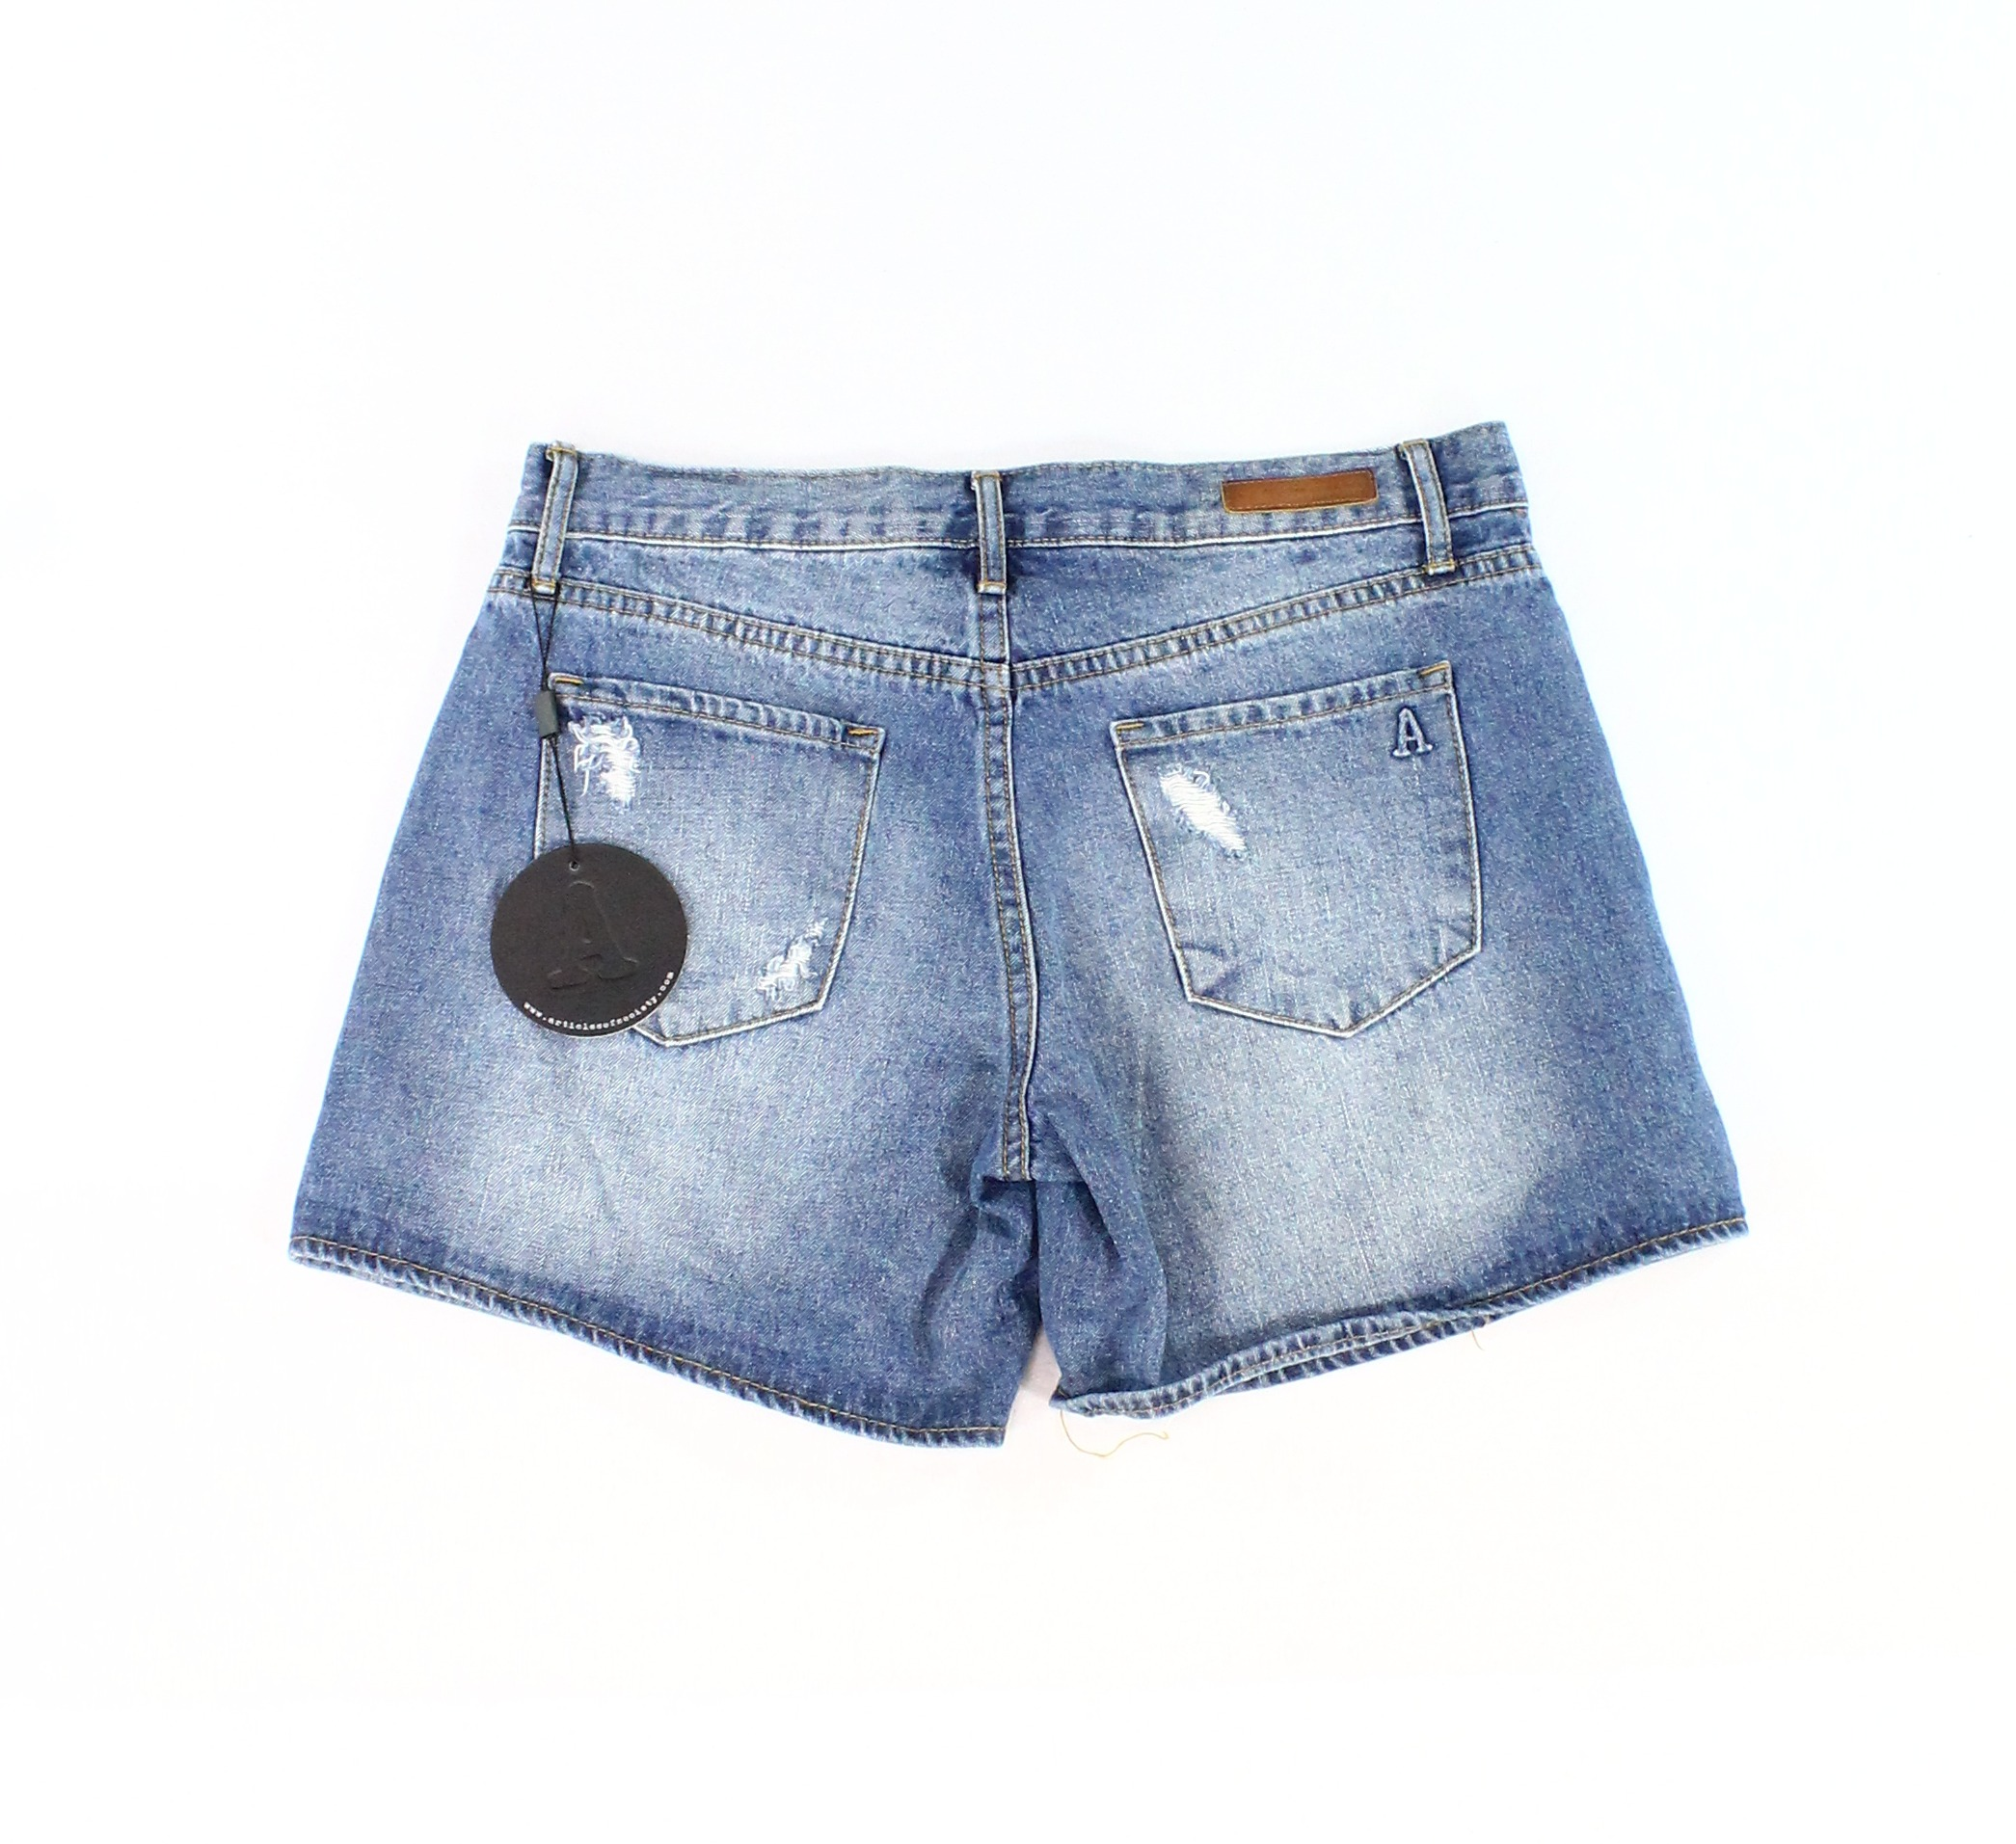 6be9961d81 Details about Articles Of Society NEW Blue Womens Size 26 Denim Distressed  Shorts $54 692